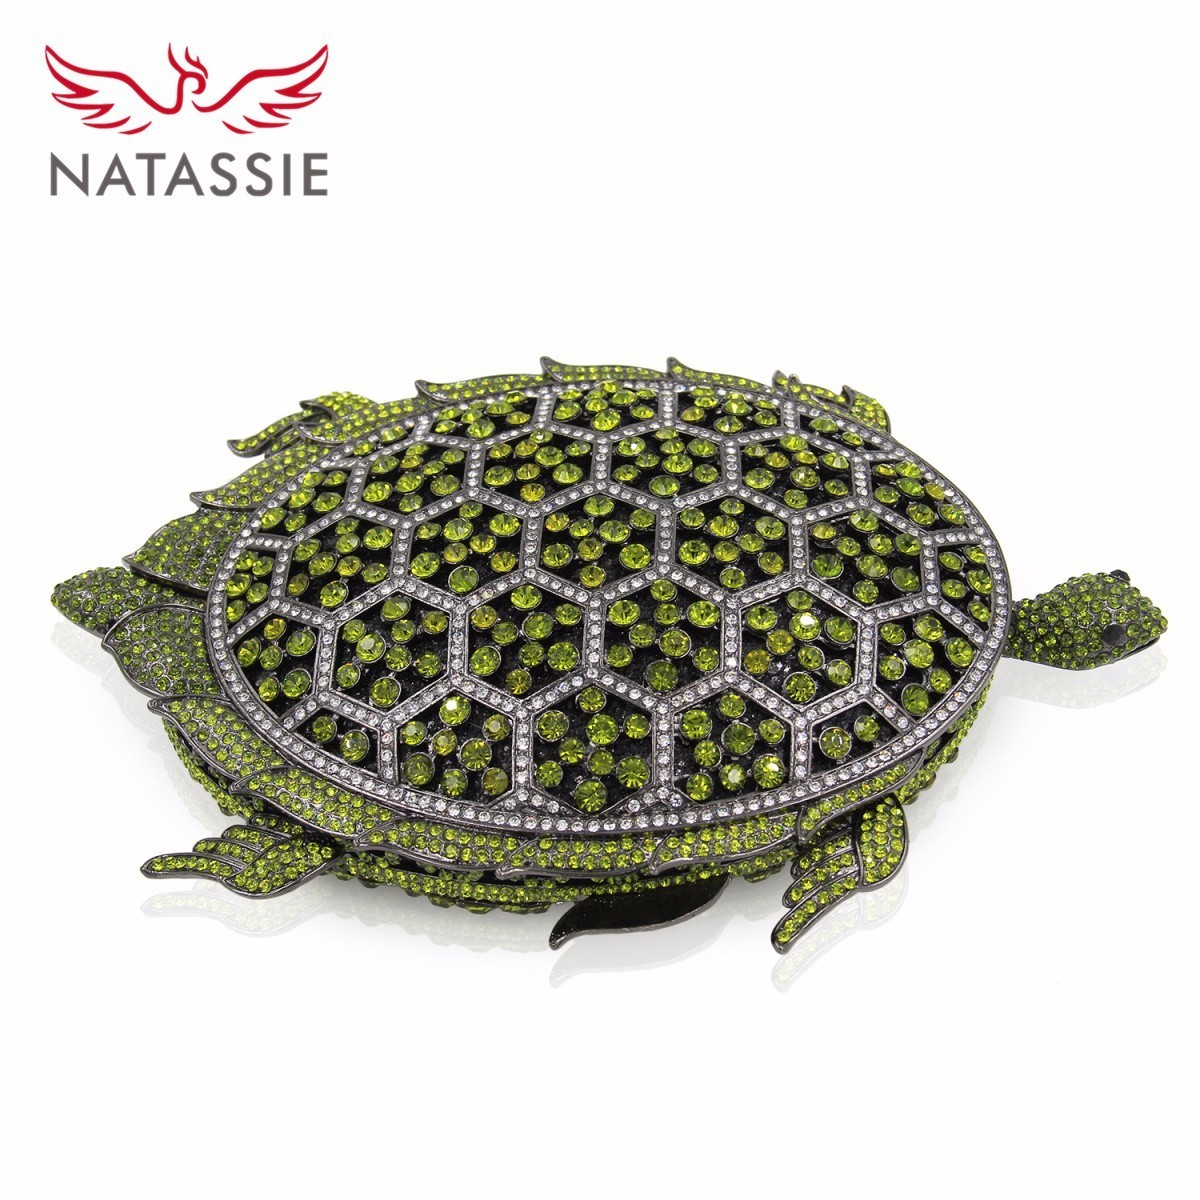 NATASSIE Women Animal Shape Crystal Bag Ladies Evening Clutches Bags Female Green Wedding Clutch Purses yuanyu 2018 new hot free shipping real python leather women clutch women hand caught bag women bag long snake women day clutches